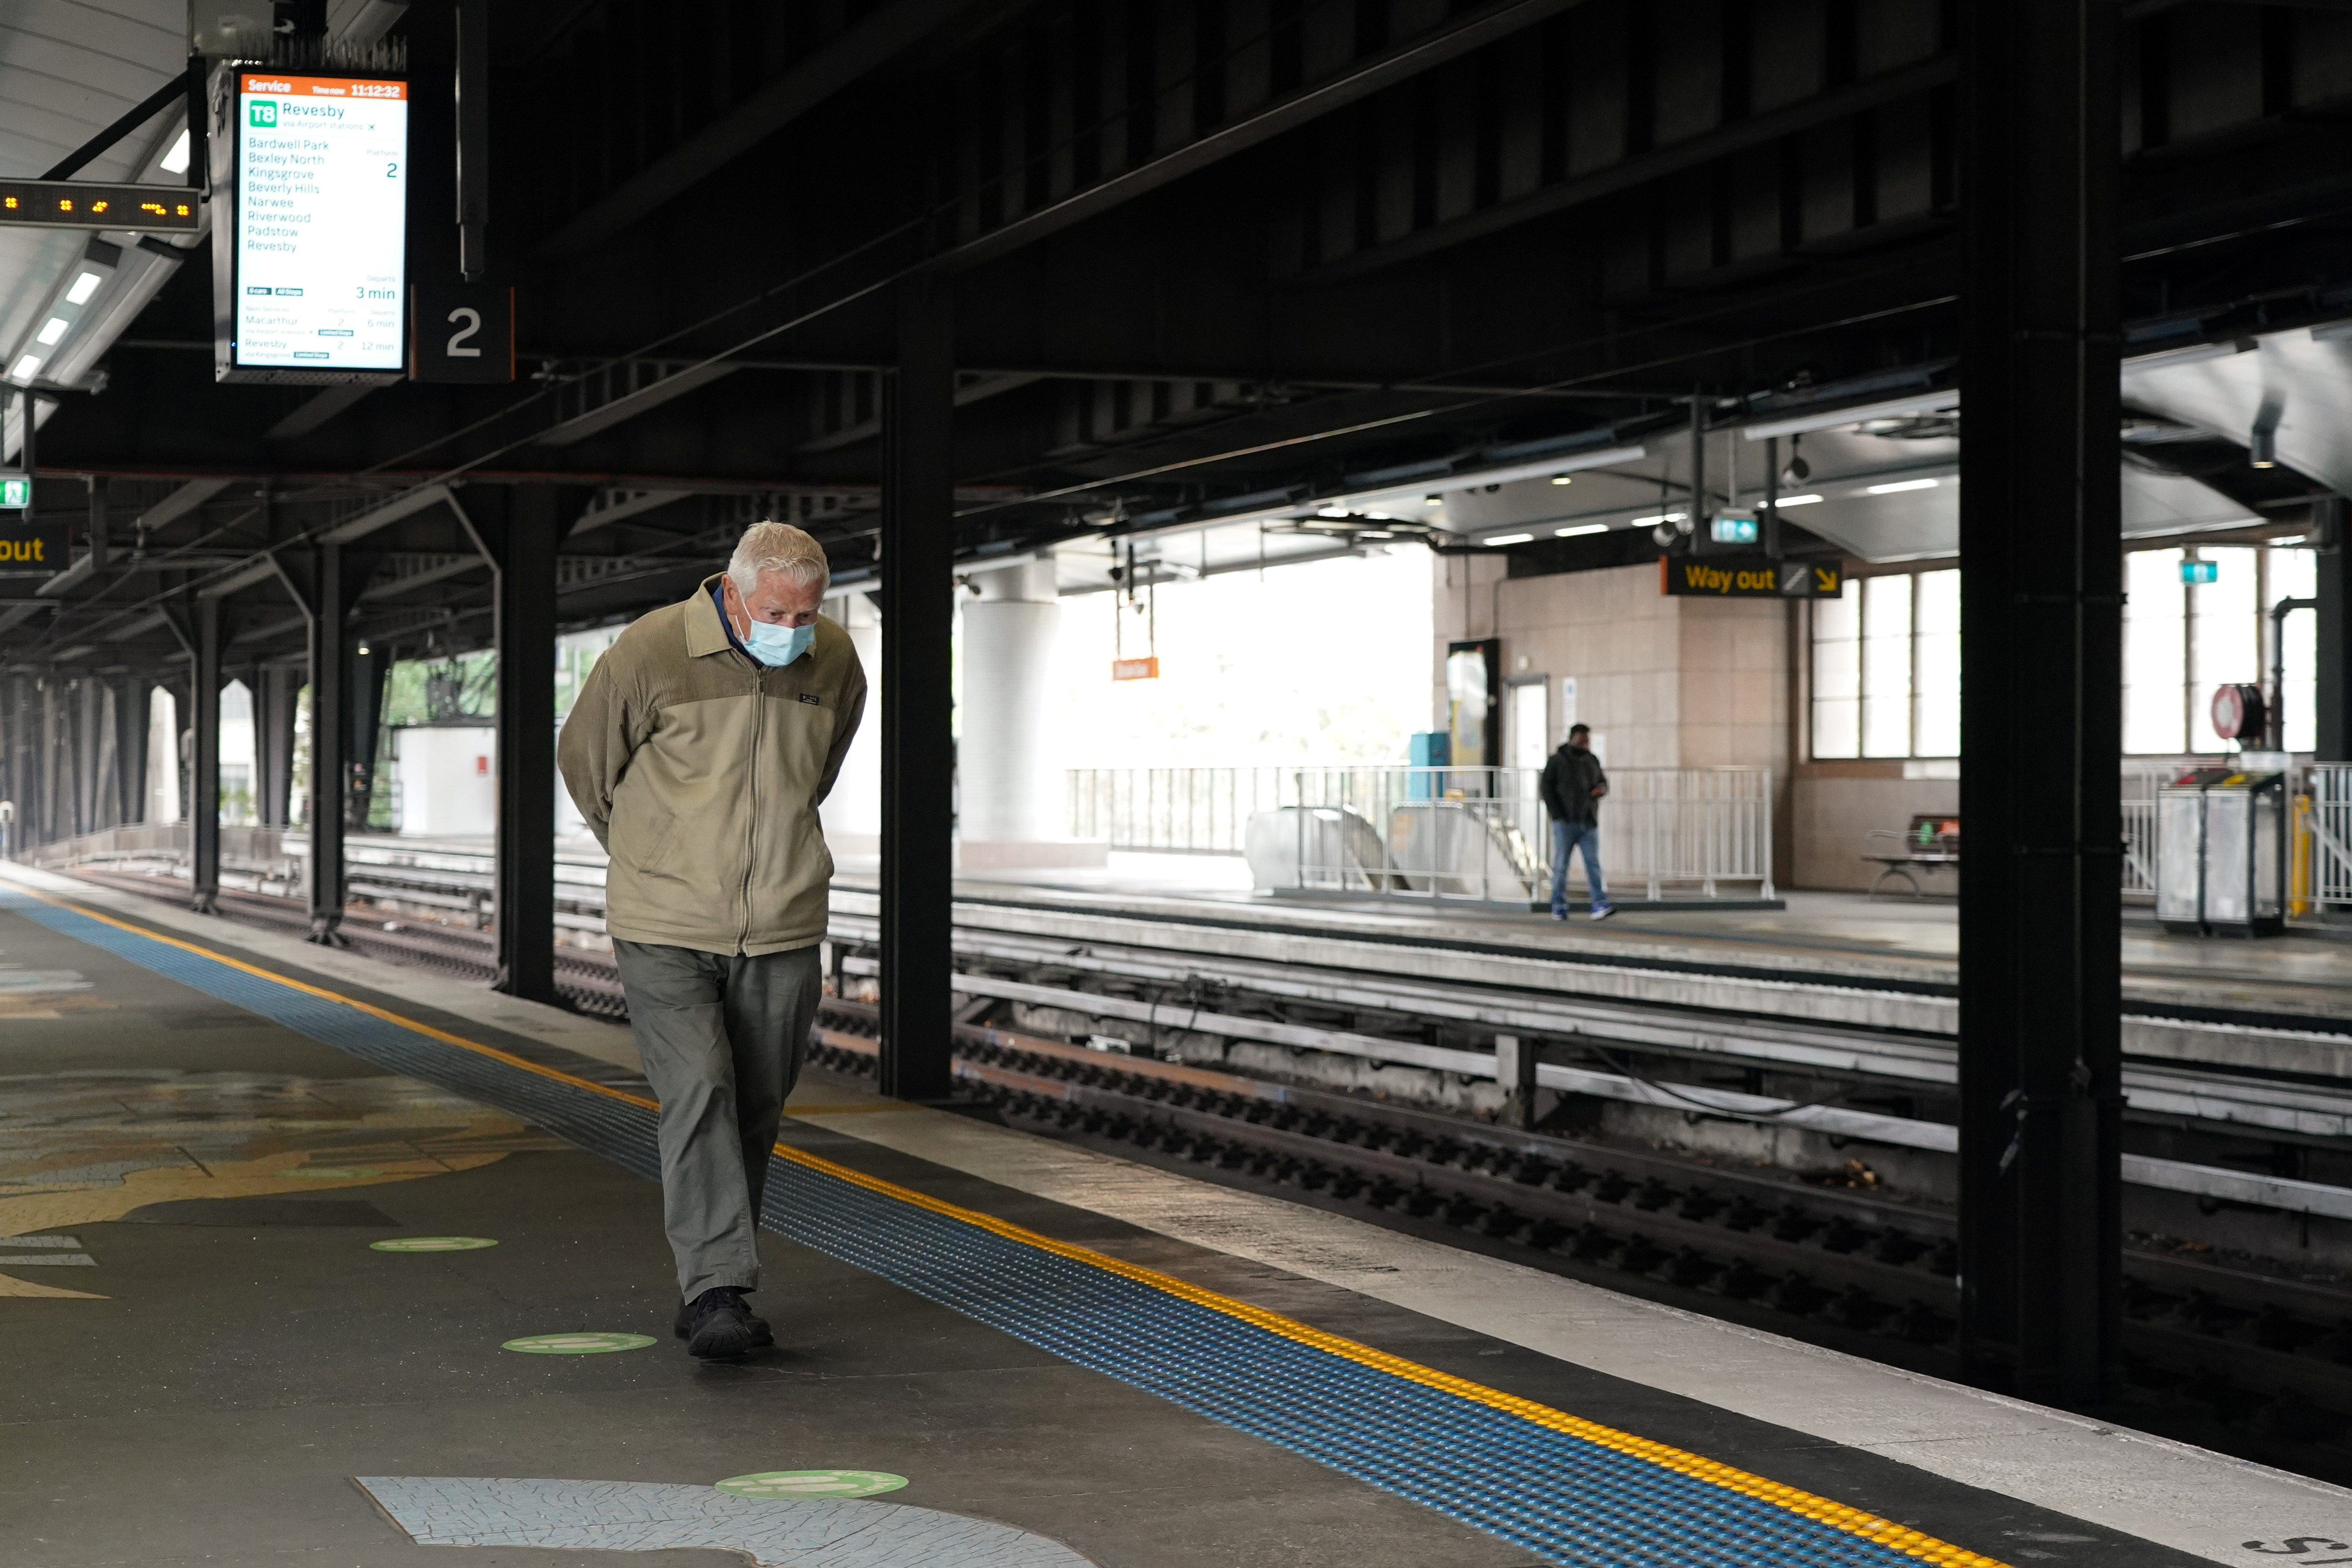 A lone passenger wearing a protective face mask walks along the deserted train platform at Circular Quay during a lockdown to curb the spread of a coronavirus disease (COVID-19) outbreak in Sydney, Australia, July 1, 2021. REUTERS/Loren Elliott